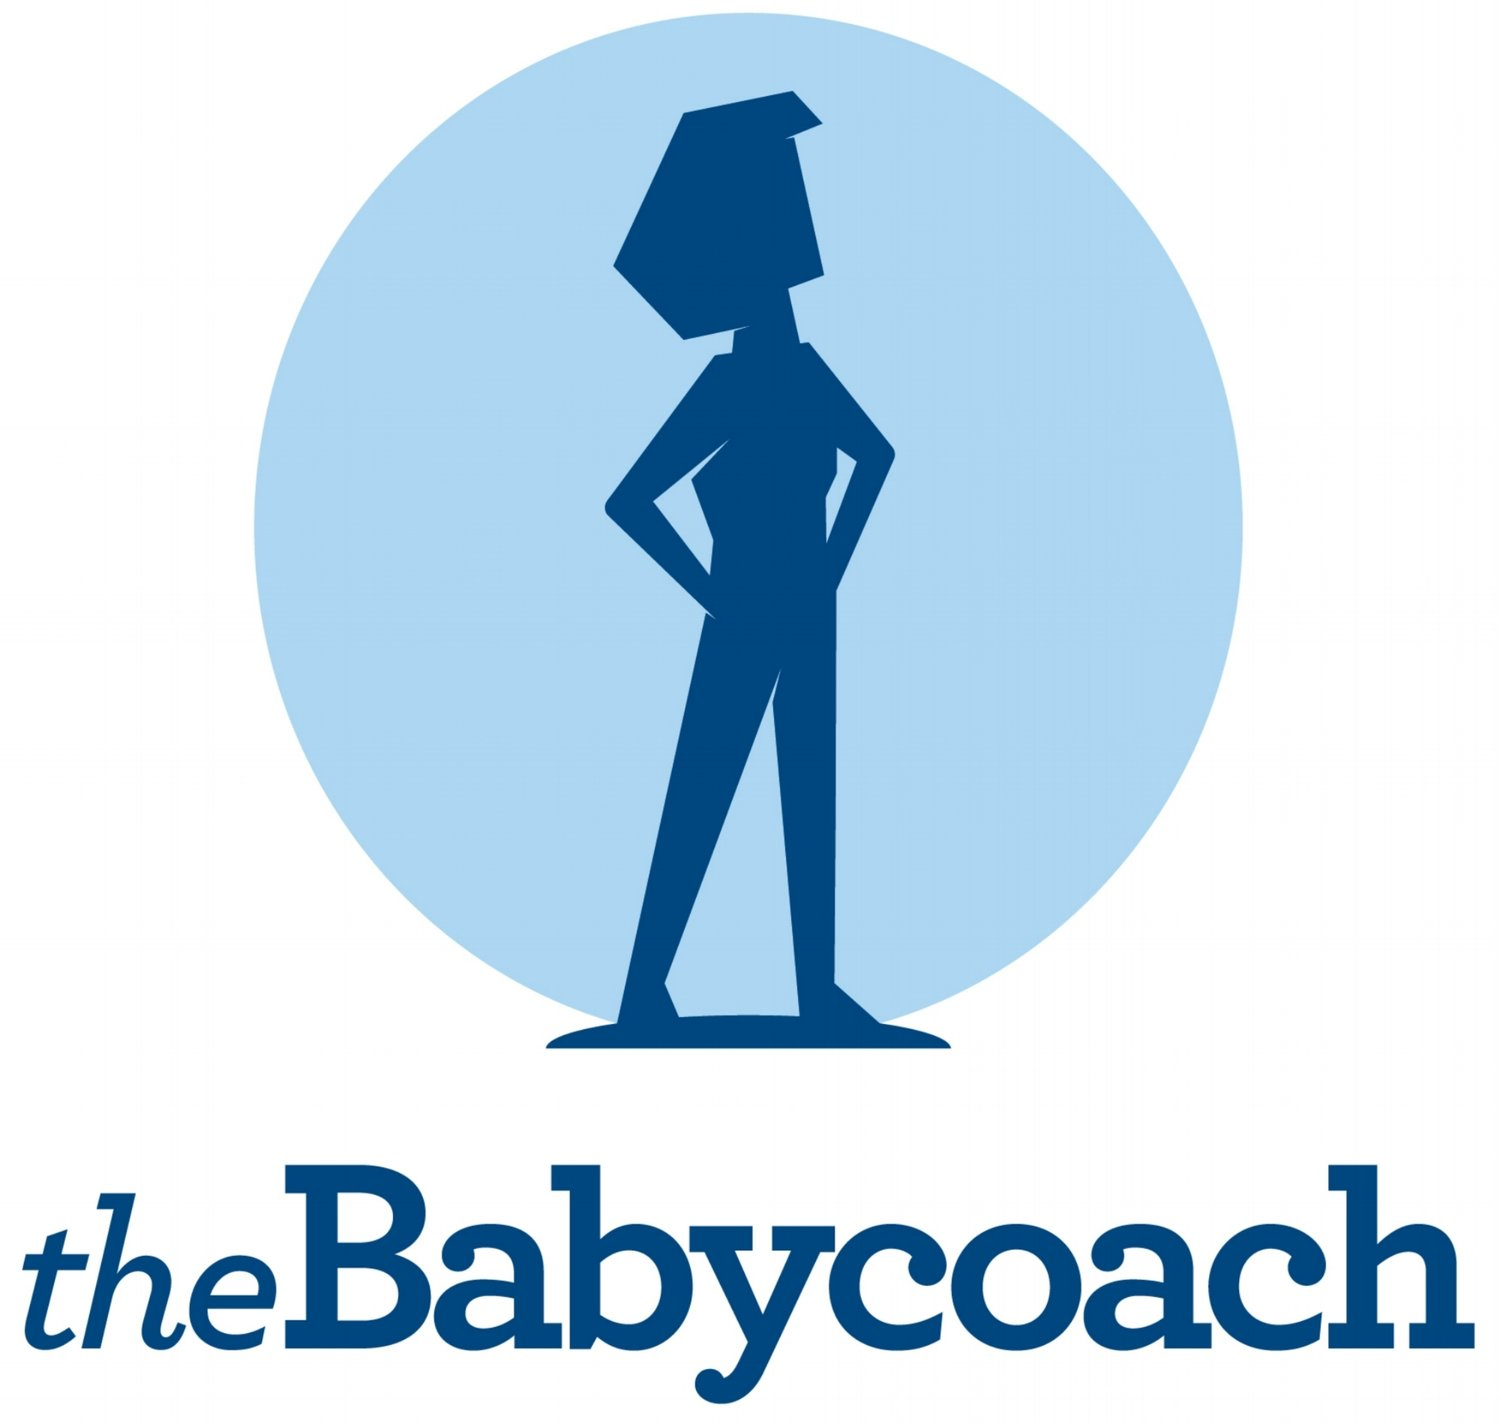 The Babycoach